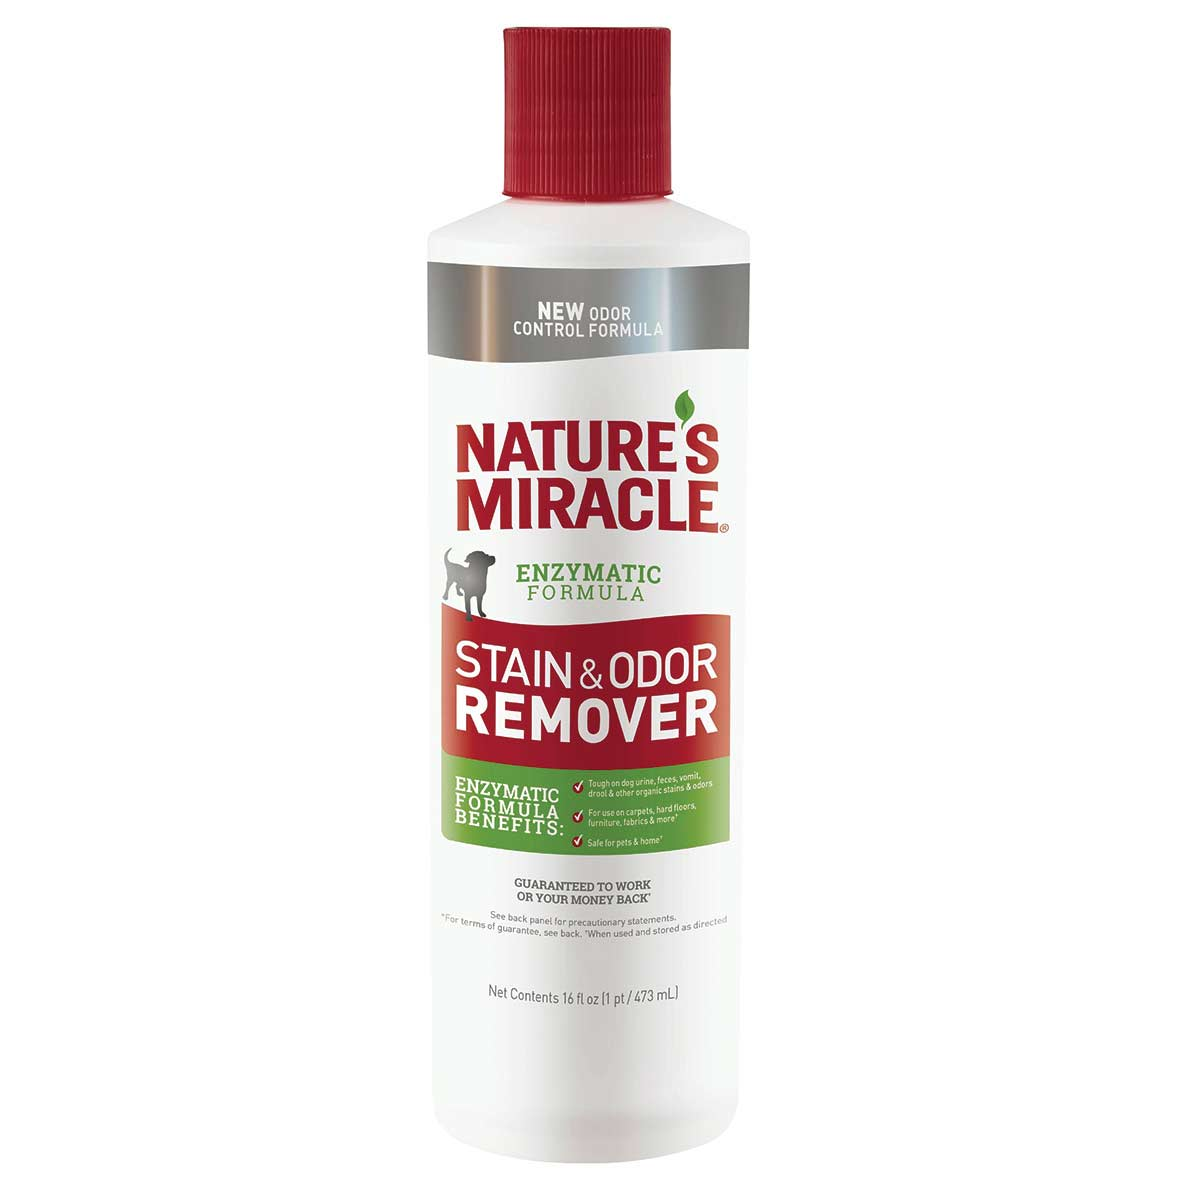 Nature's Miracle Stain & Odor Remover for House 16 oz